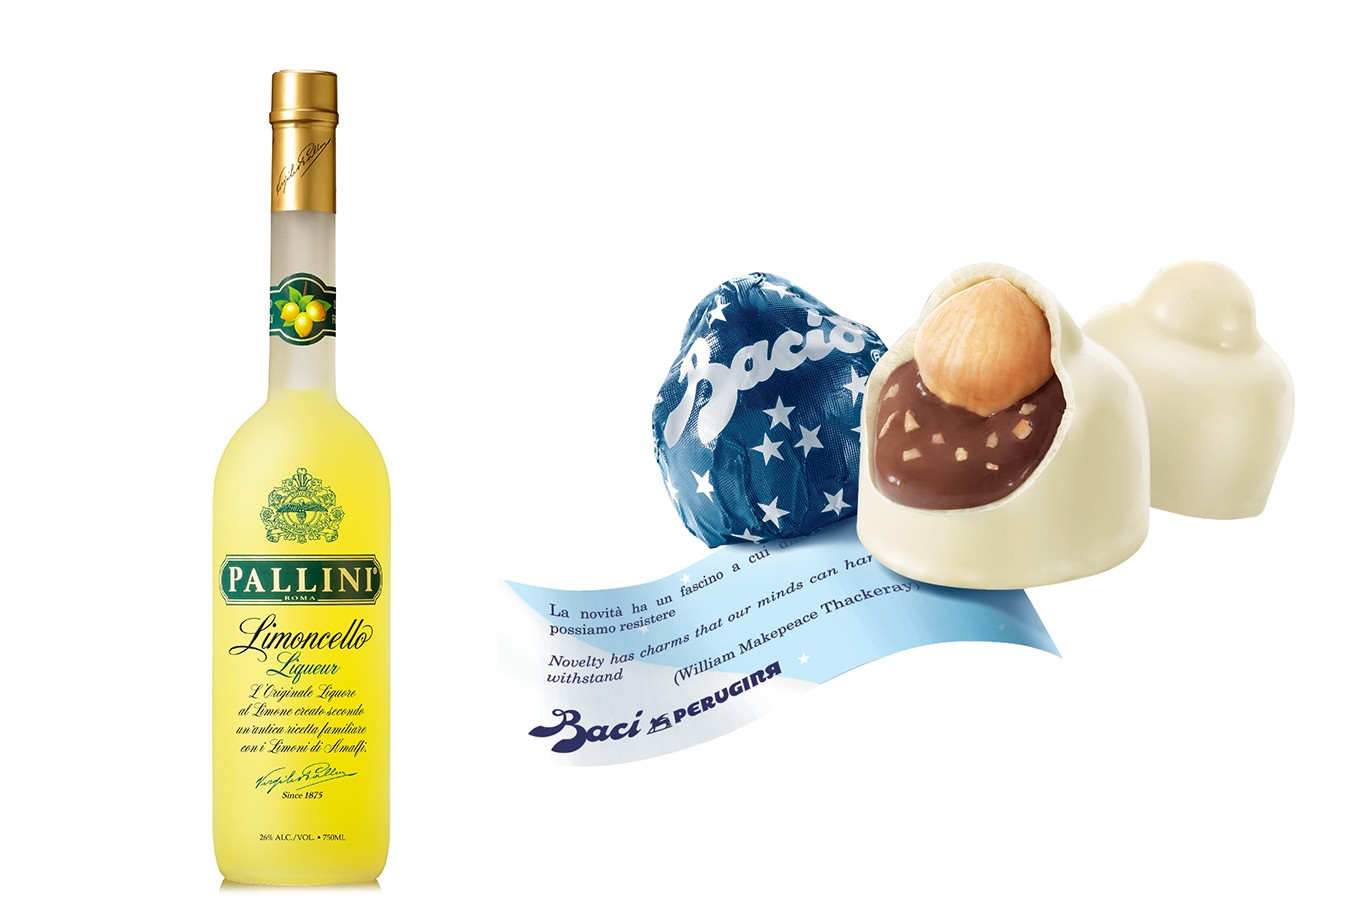 ITALY - Drink: Limoncello, a lemon liqueur mainly produced in southern Italy and best served chilled as an after-dinner digestive. It is a perfect drink after a meal, especially when paired with the typical Italian almond biscuits called cantucci. <br><br> Eat: Baci perugina–fine, small and dark chocolates filled with chocolate-hazelnut cream and a whole hazelnut. Created in 1922, they represent a long history of Italian excellence by Perugina (baciperugina.com), a master in chocolate making. Apart from a taste that will indulge your palate, each piece is wrapped in a collectable message of love and friendship. (Michela Magri, Director of the Italian Cultural Institute)